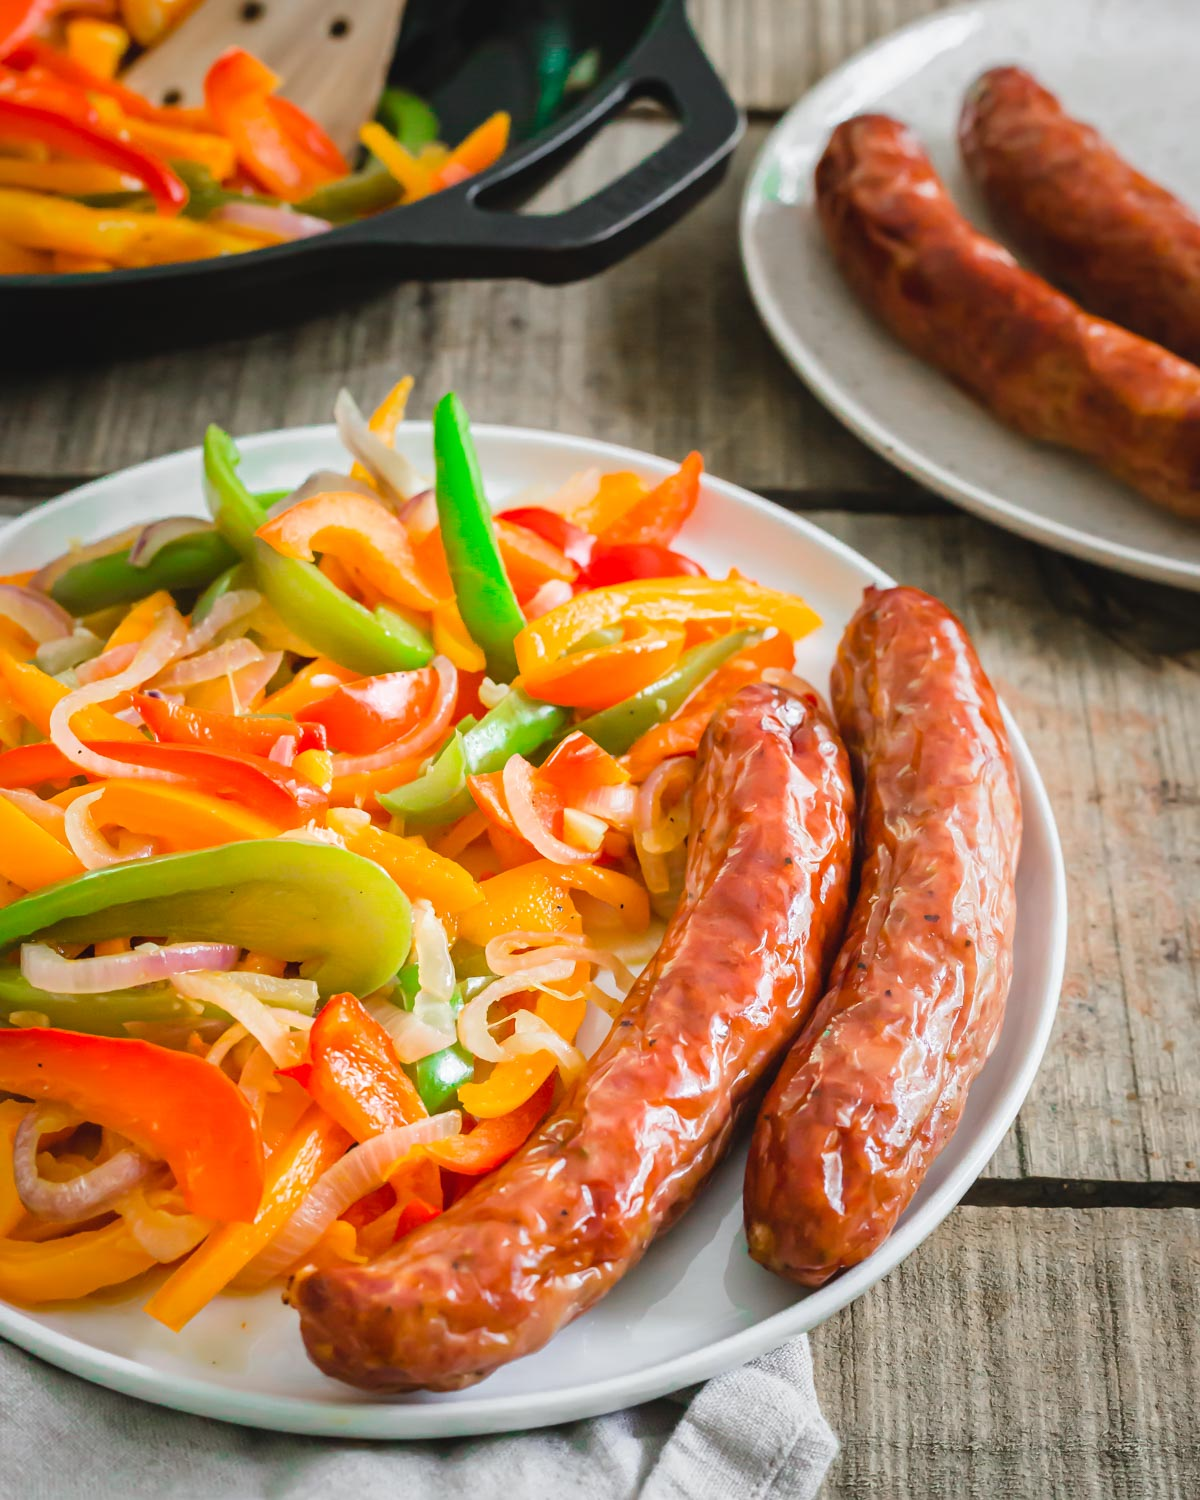 Air fryer Italian sausage served with peppers and onions on a plate.